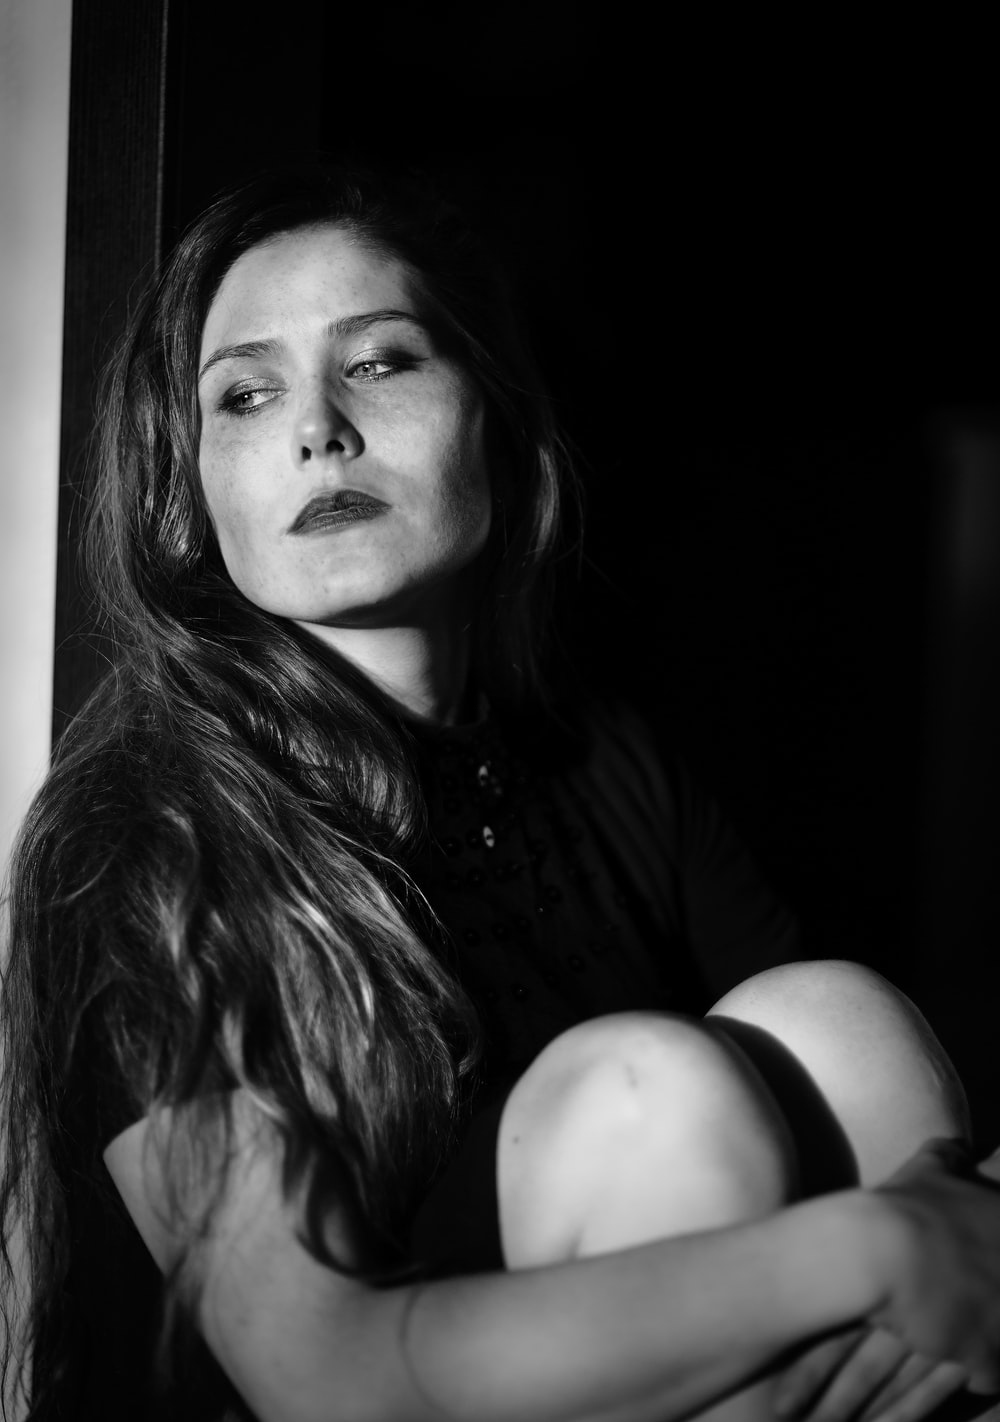 woman in black shirt in grayscale photography